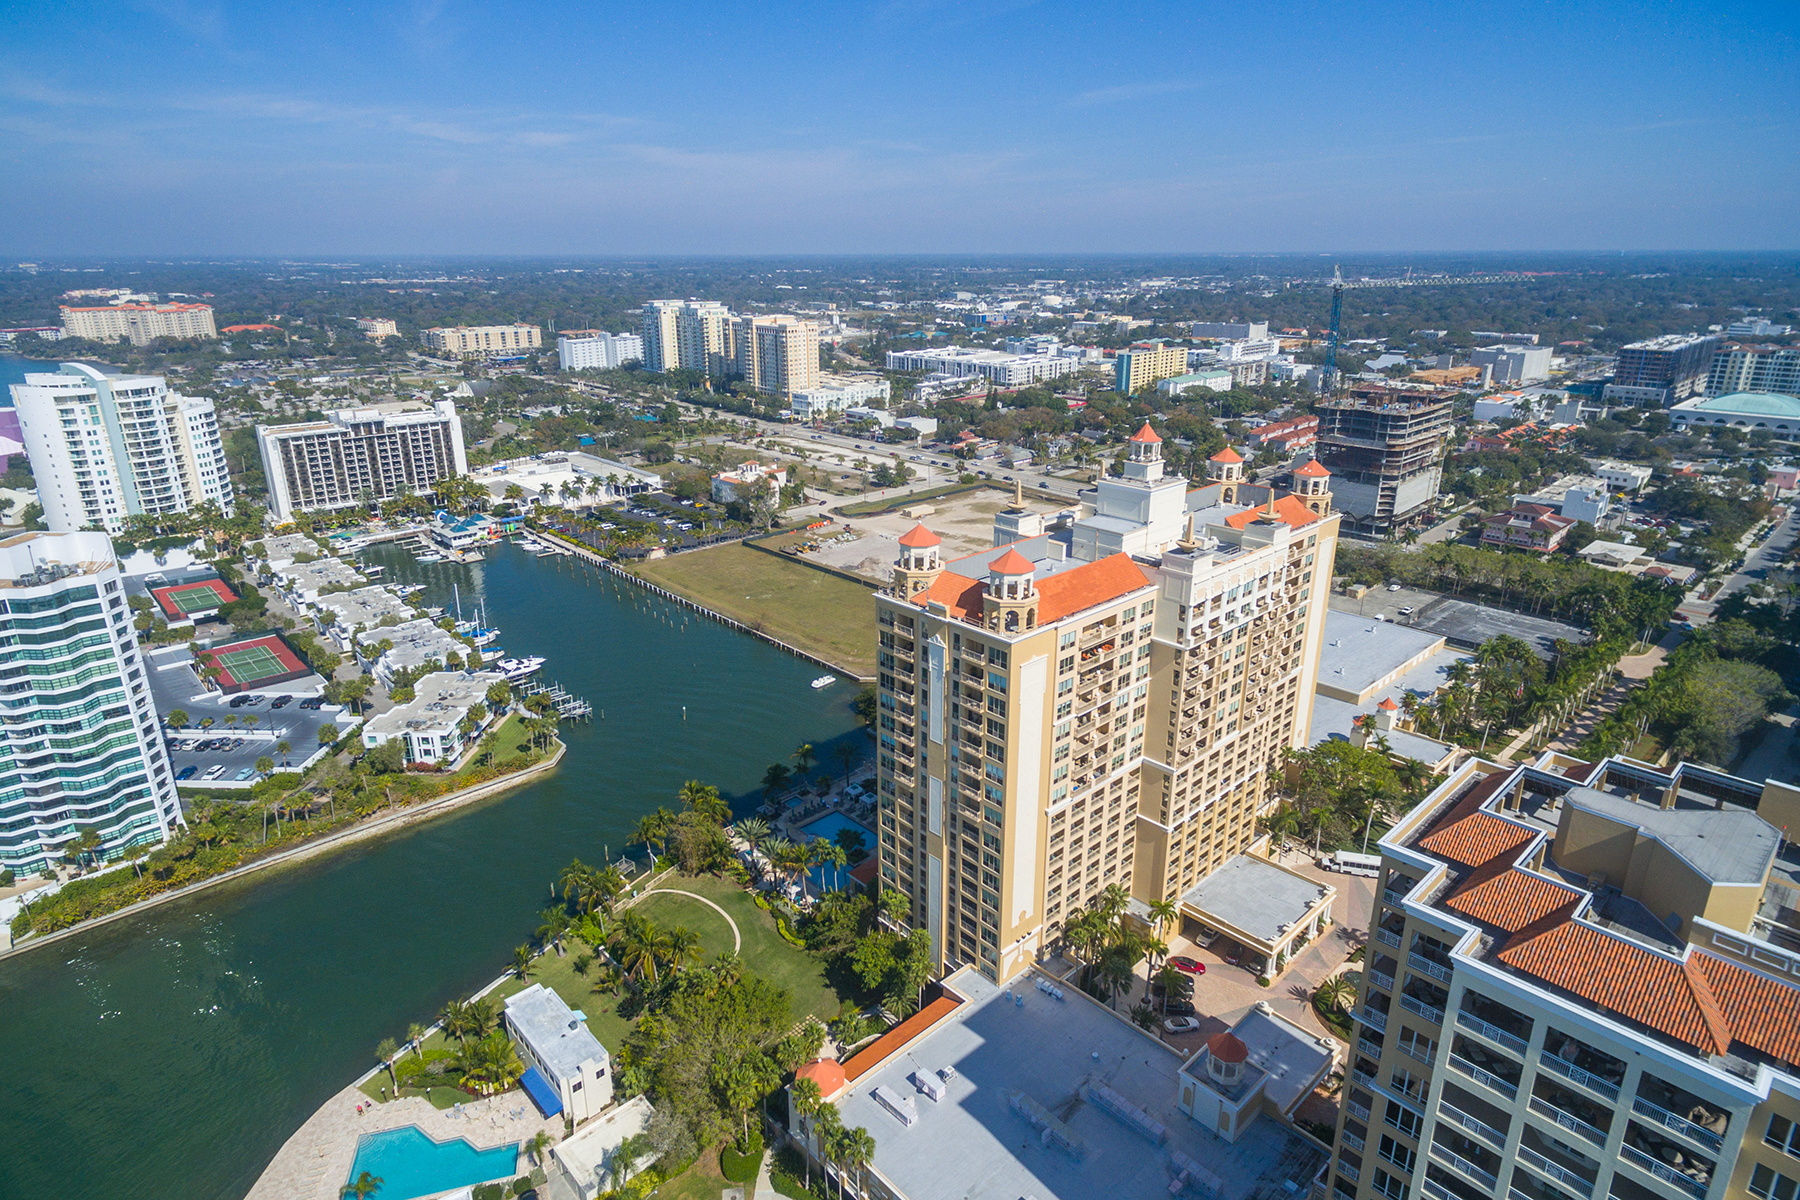 Condominium for Sale at THE RESIDENCES AT RITZ CARLTON 1111 Ritz Carlton Dr 1803, Sarasota, Florida 34236 United States